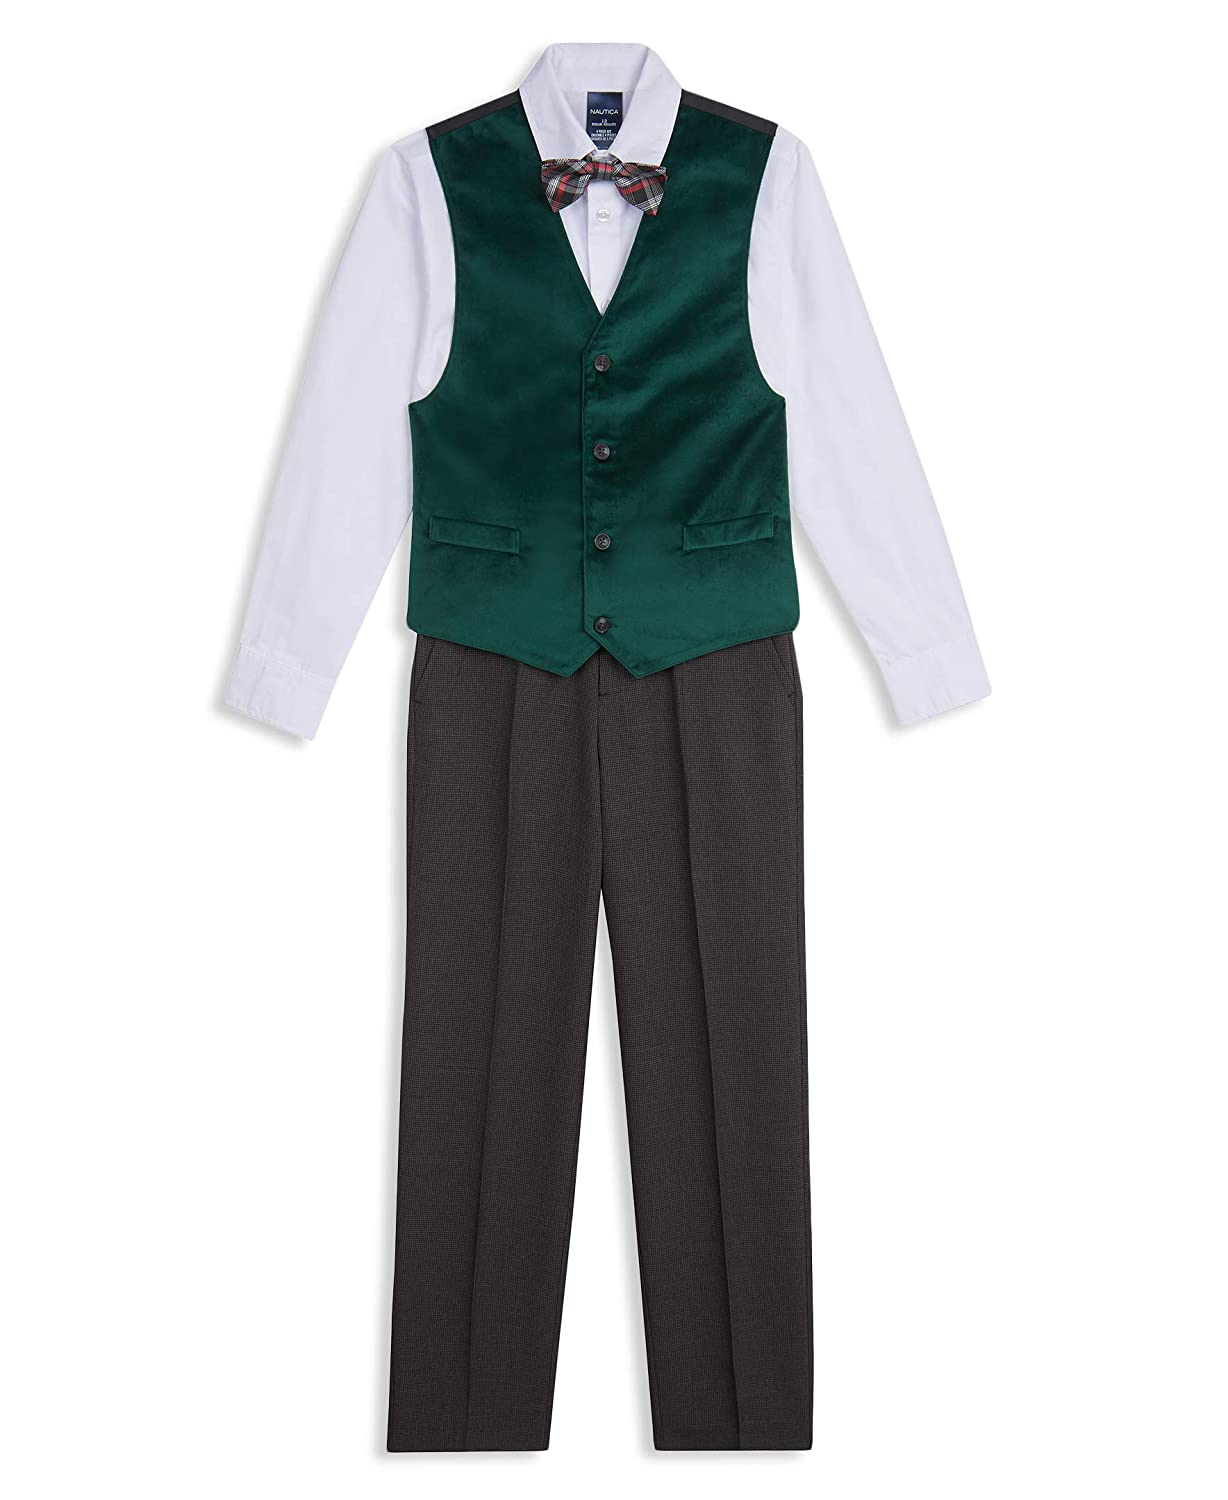 Victorian Kids Costumes & Shoes- Girls, Boys, Baby, Toddler Nautica Boys 4-Piece Vest Set with Dress Shirt Bow Tie Vest and Pants  AT vintagedancer.com